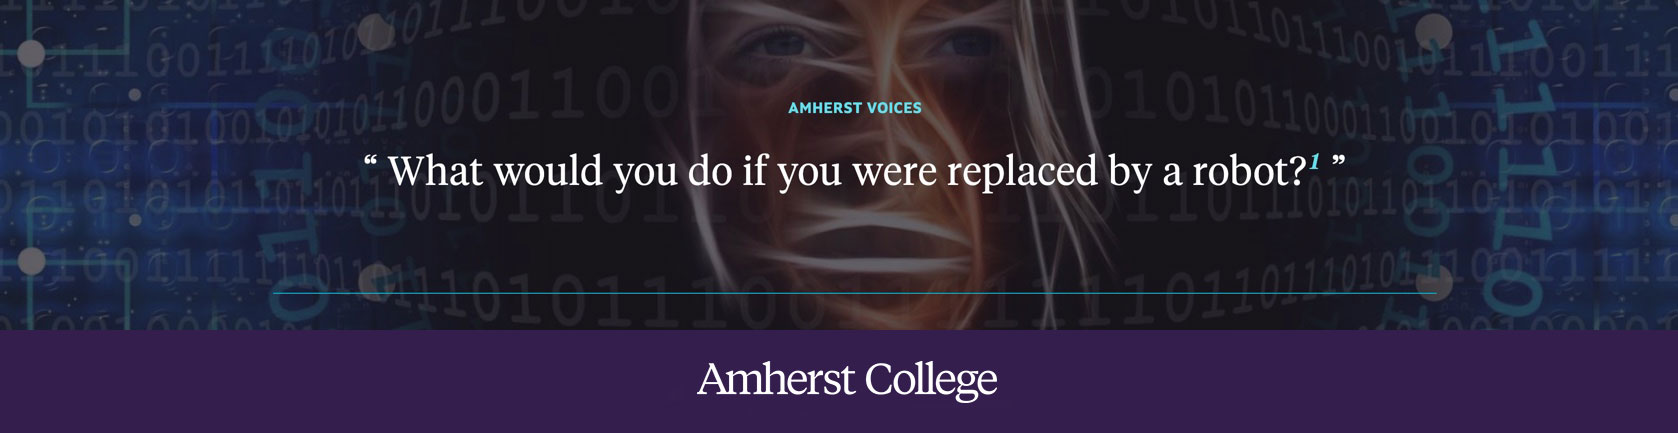 Quote by Patrick Frenett: Waht would you do if you were replaced by a robot?